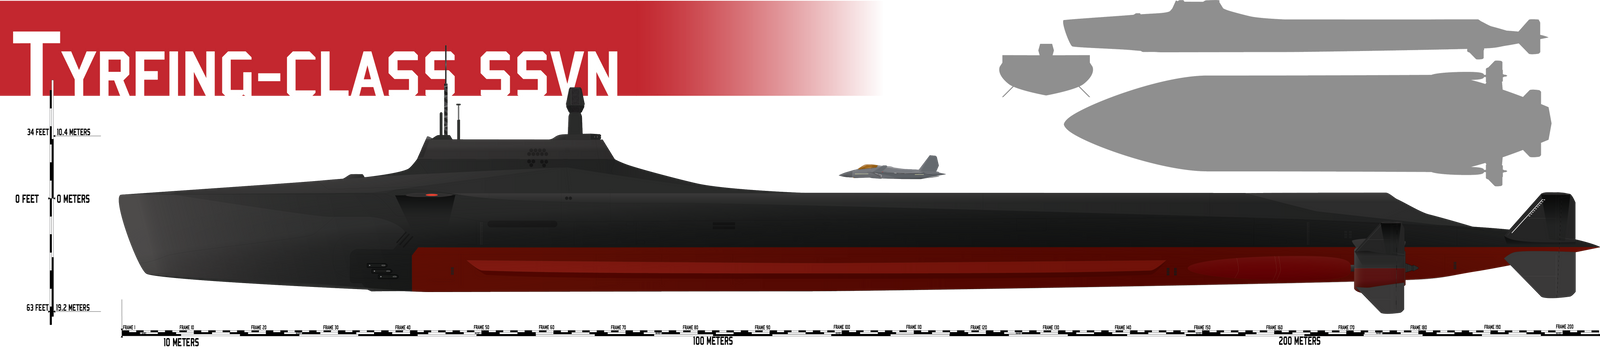 Tyrfing-class SSVN Submersible Strike Carrier by Afterskies